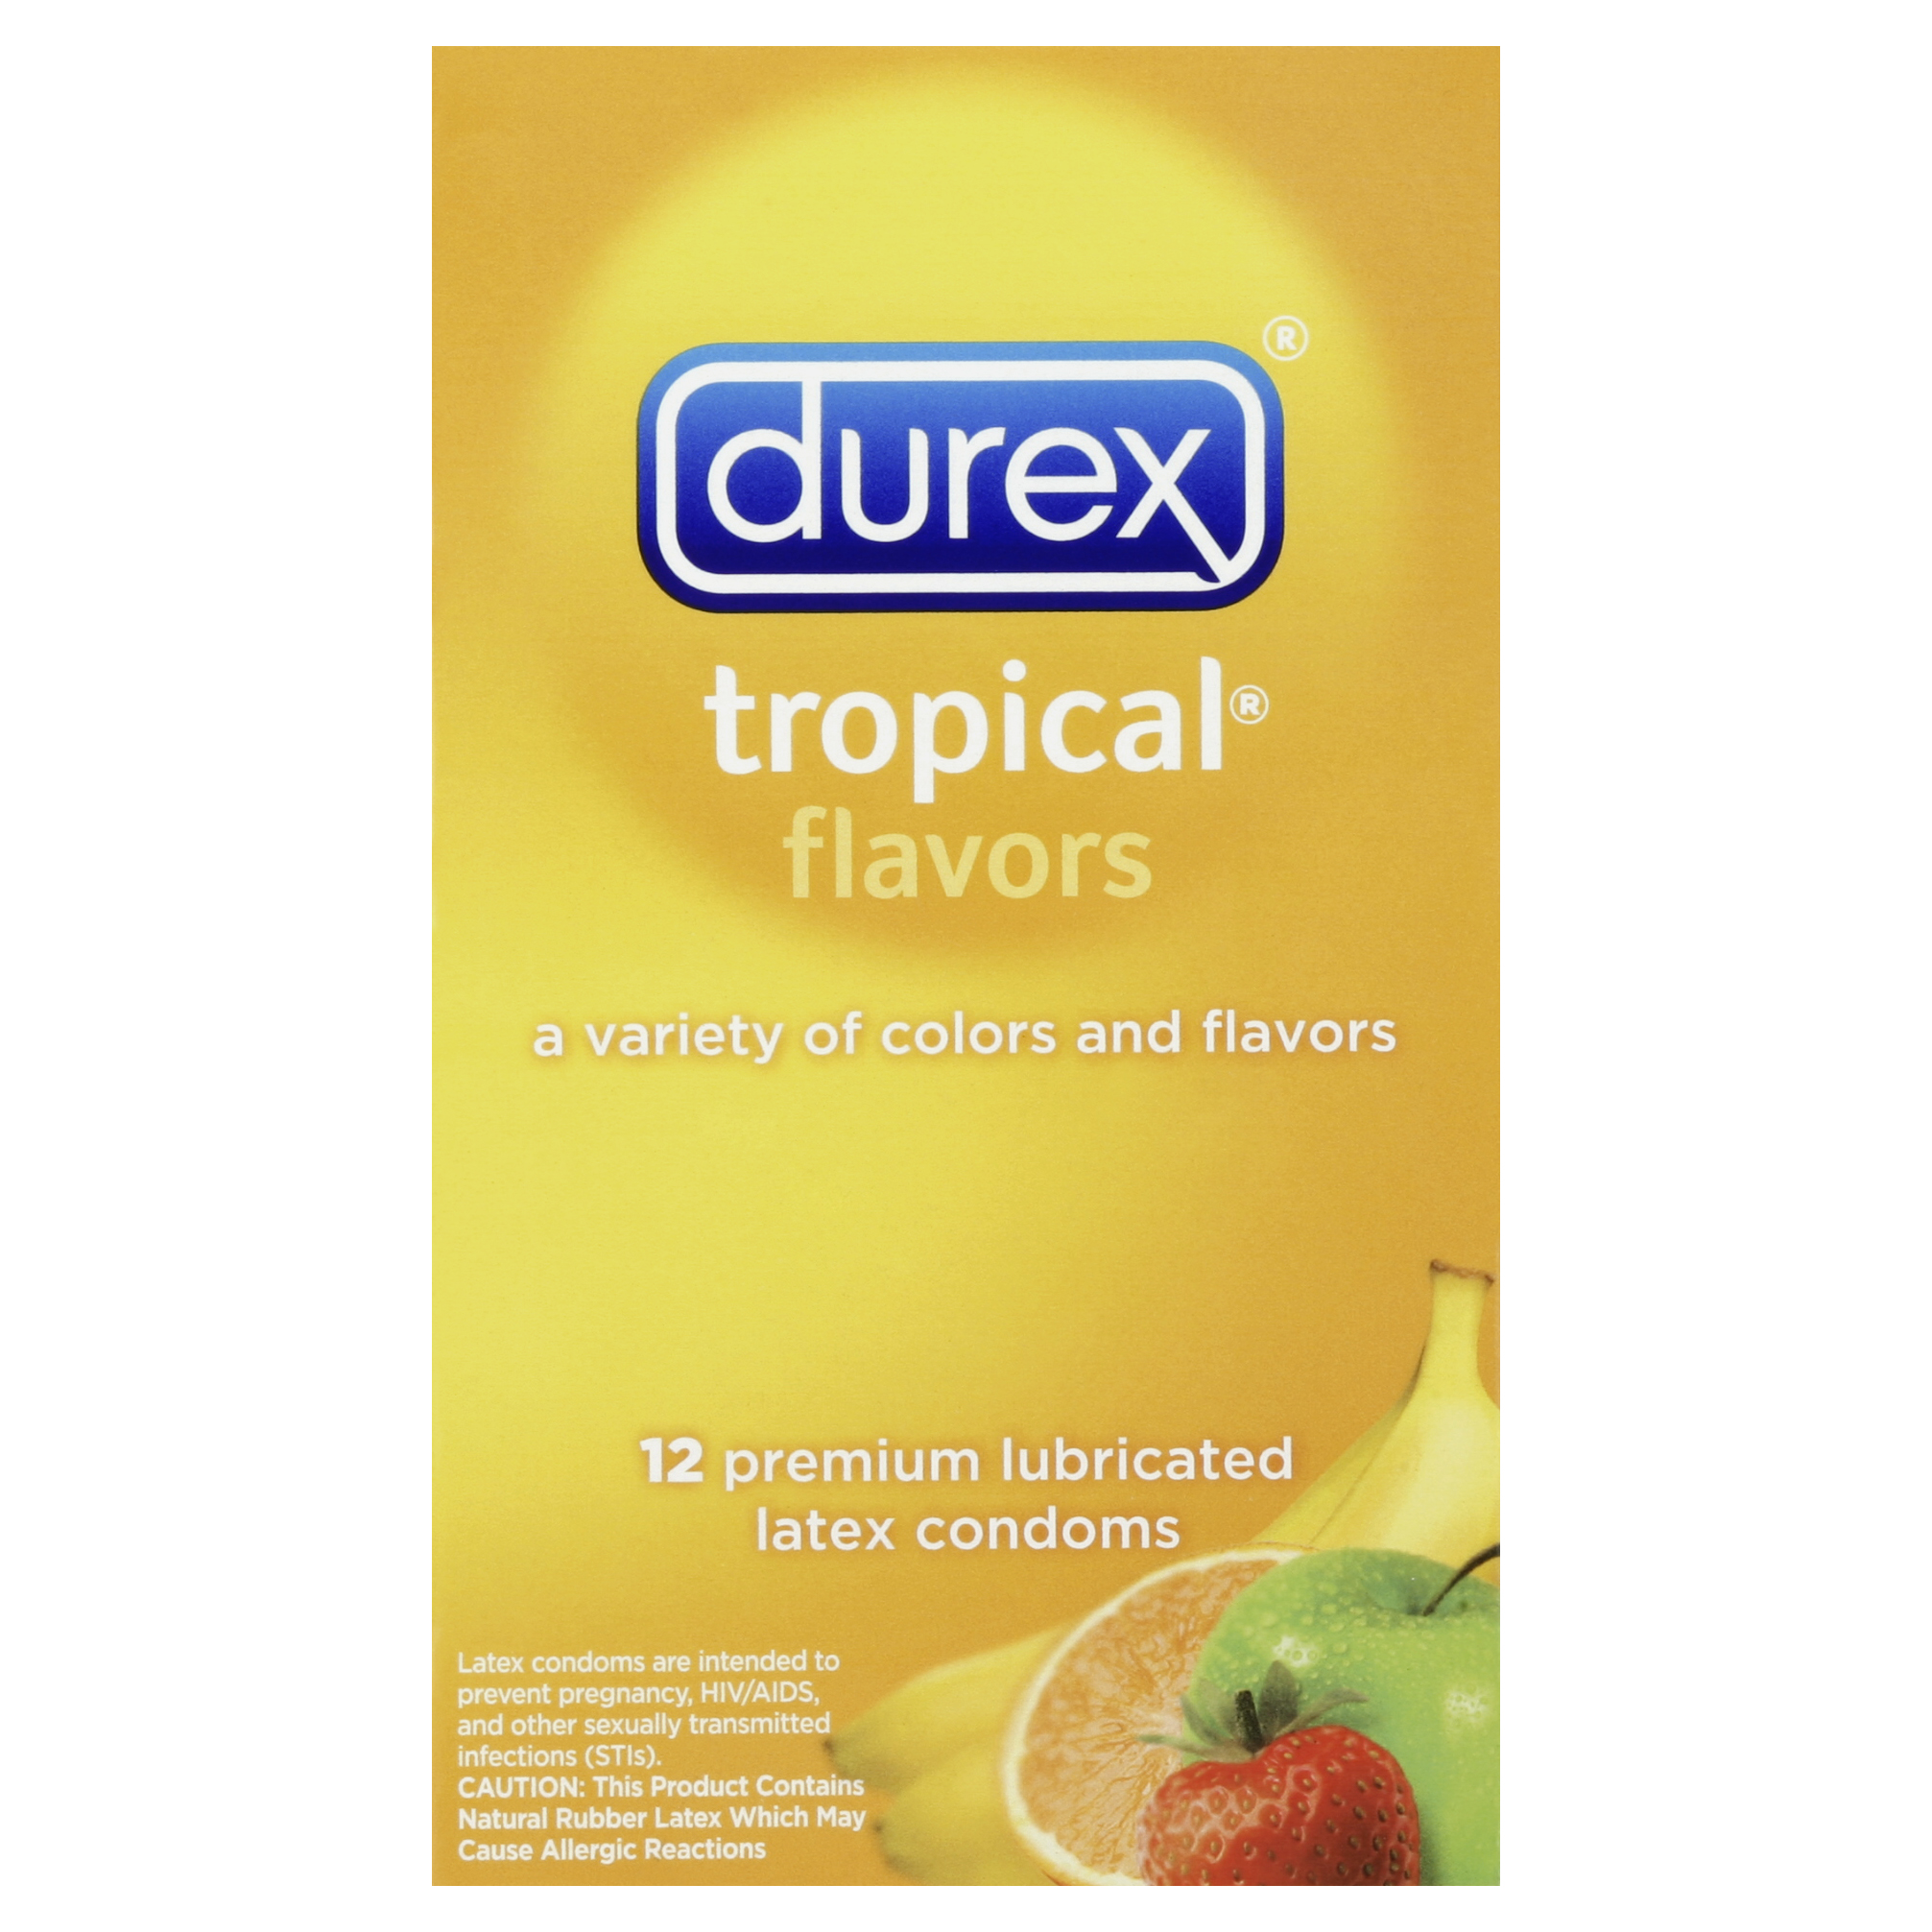 Durex Tropical Flavors Flavored Premium Condoms, 12 Count